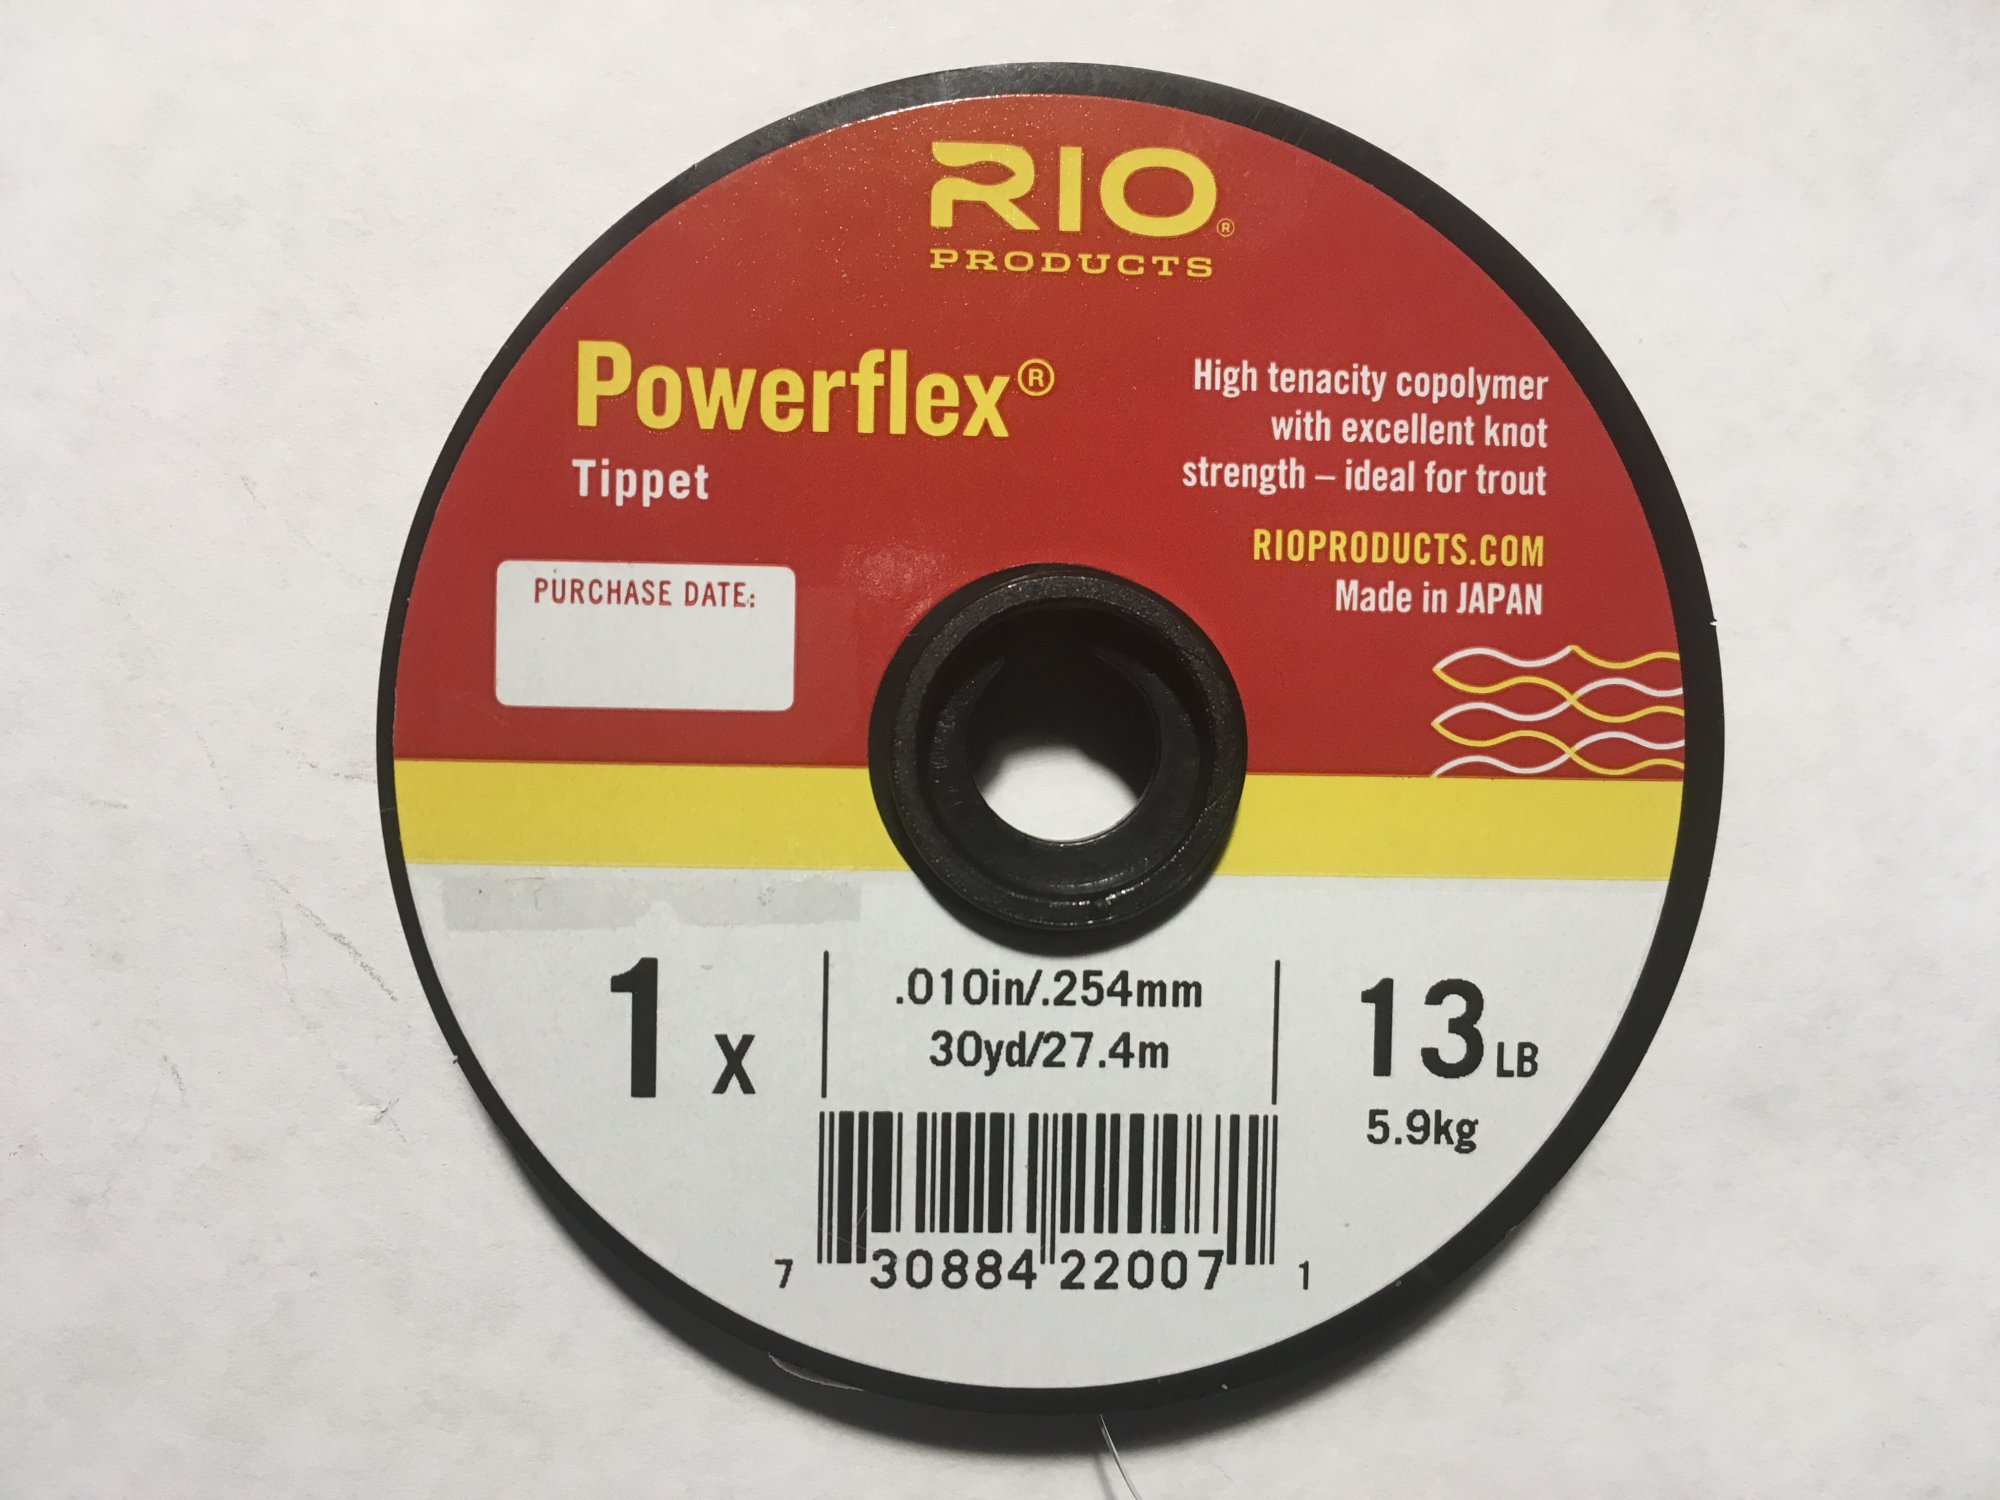 Powerflex Tippett 1x